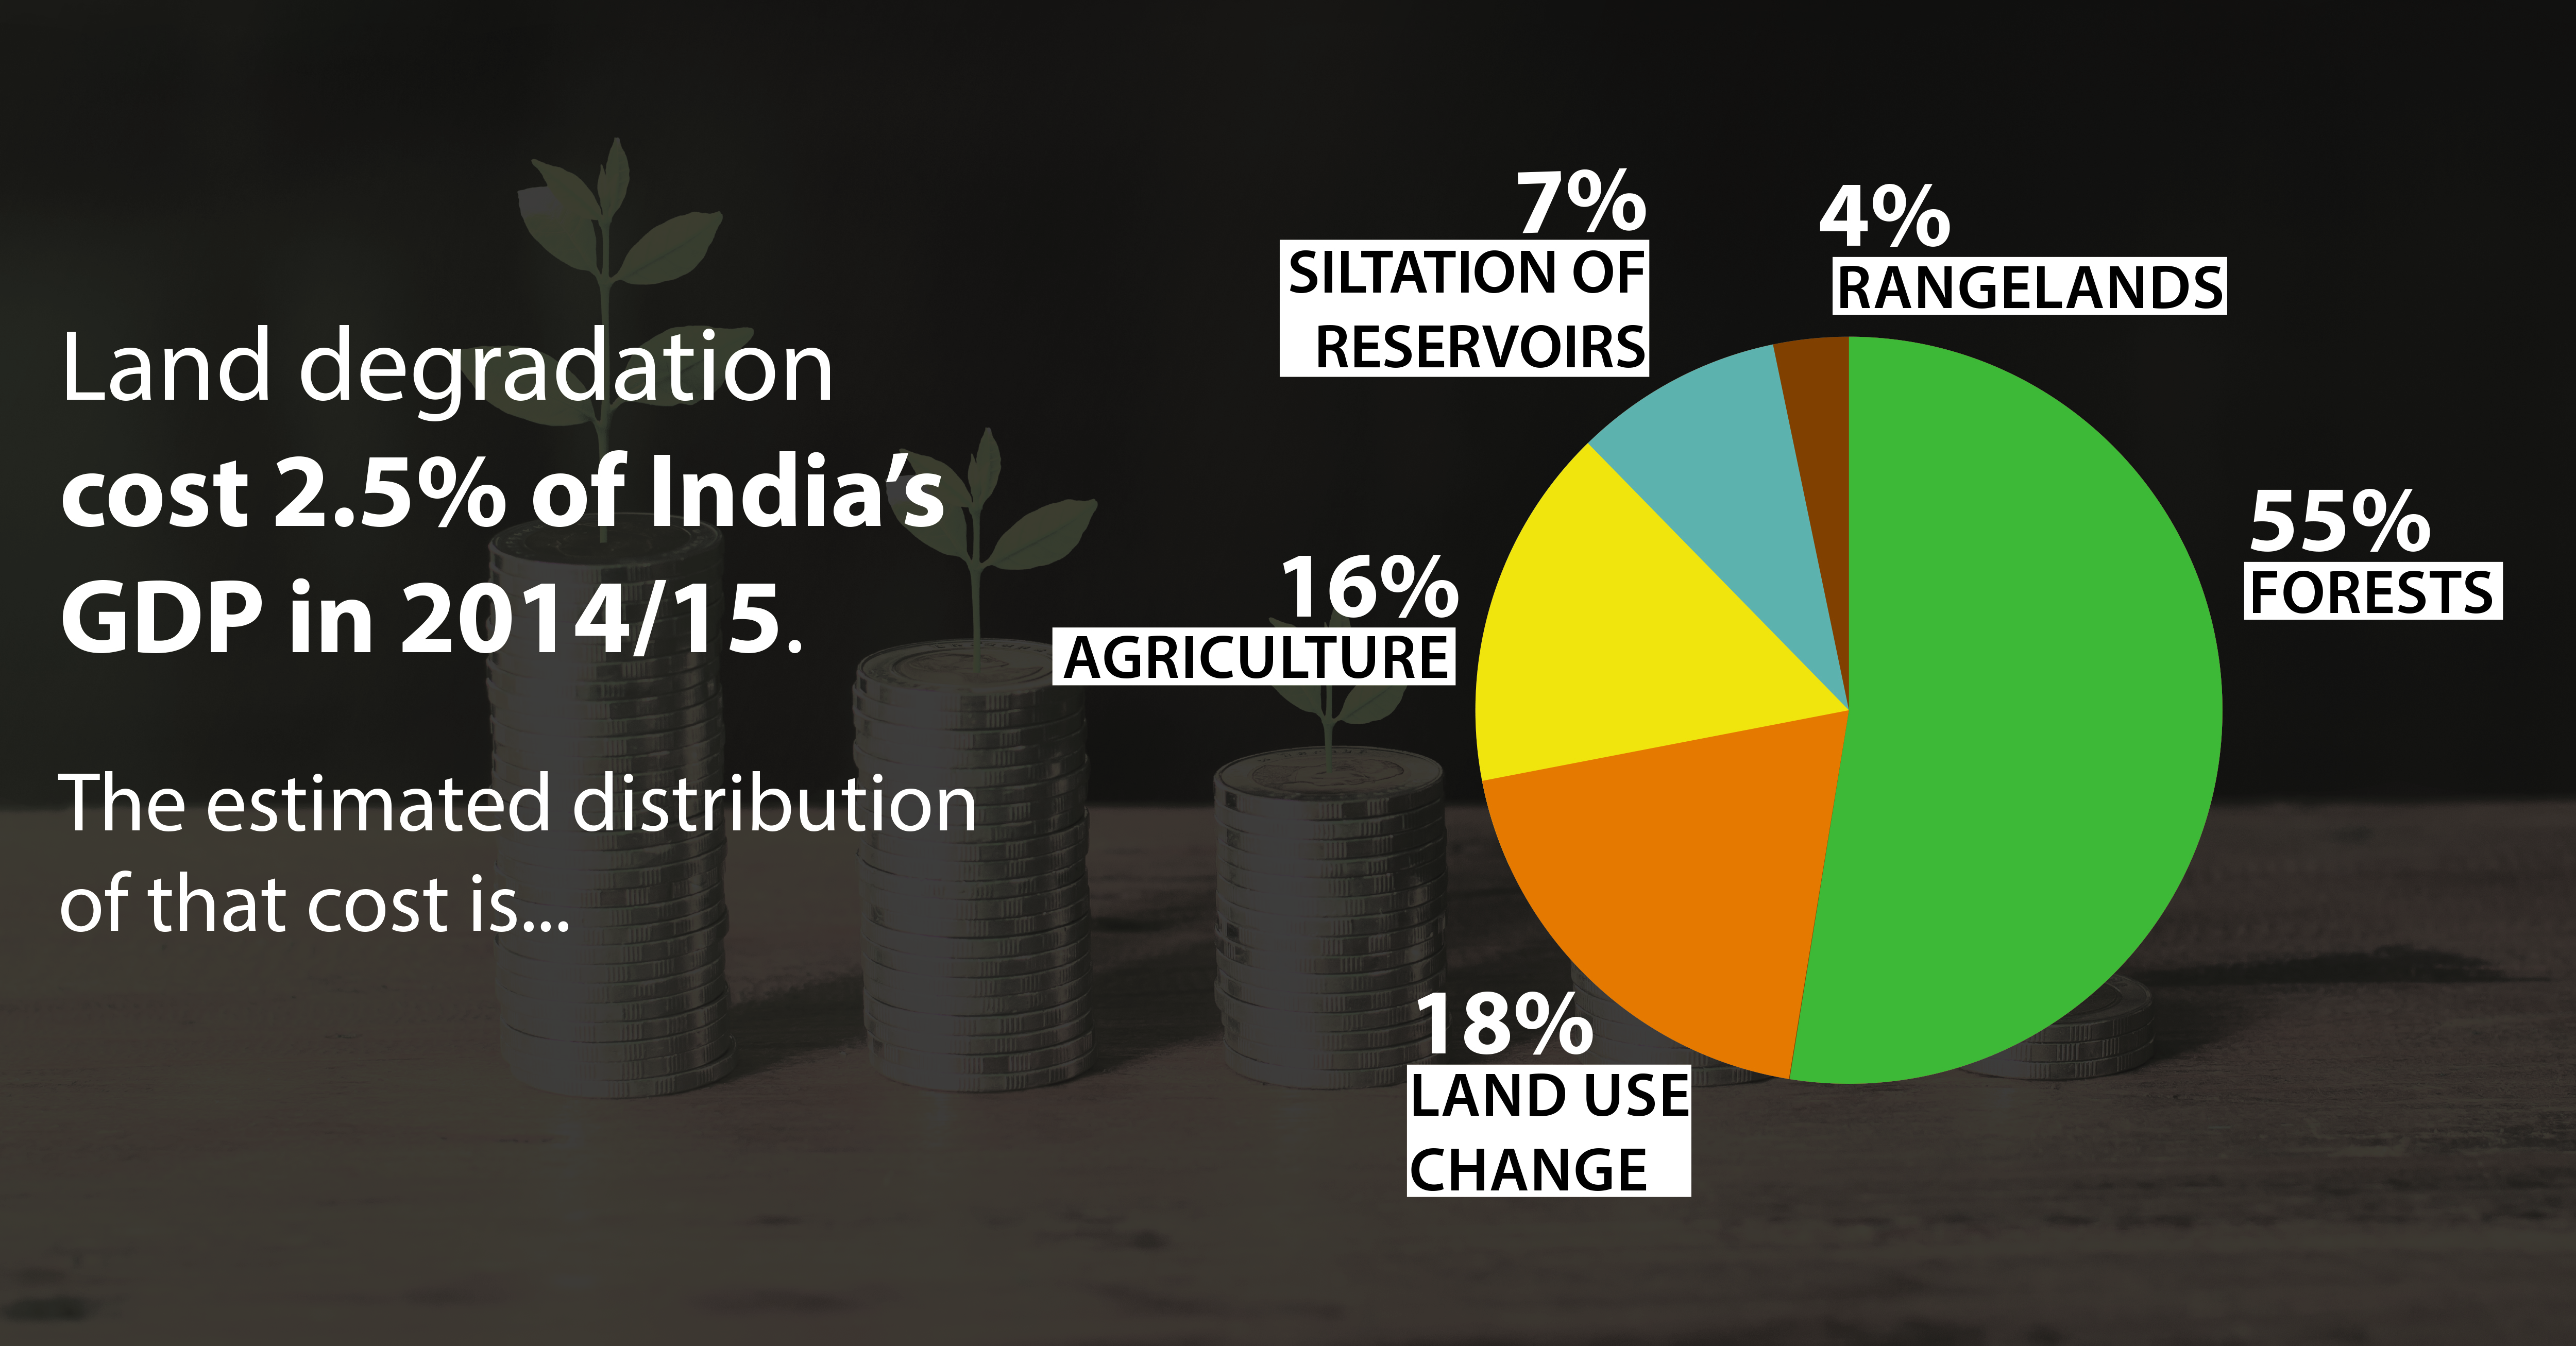 Economic cost of land degradation in India